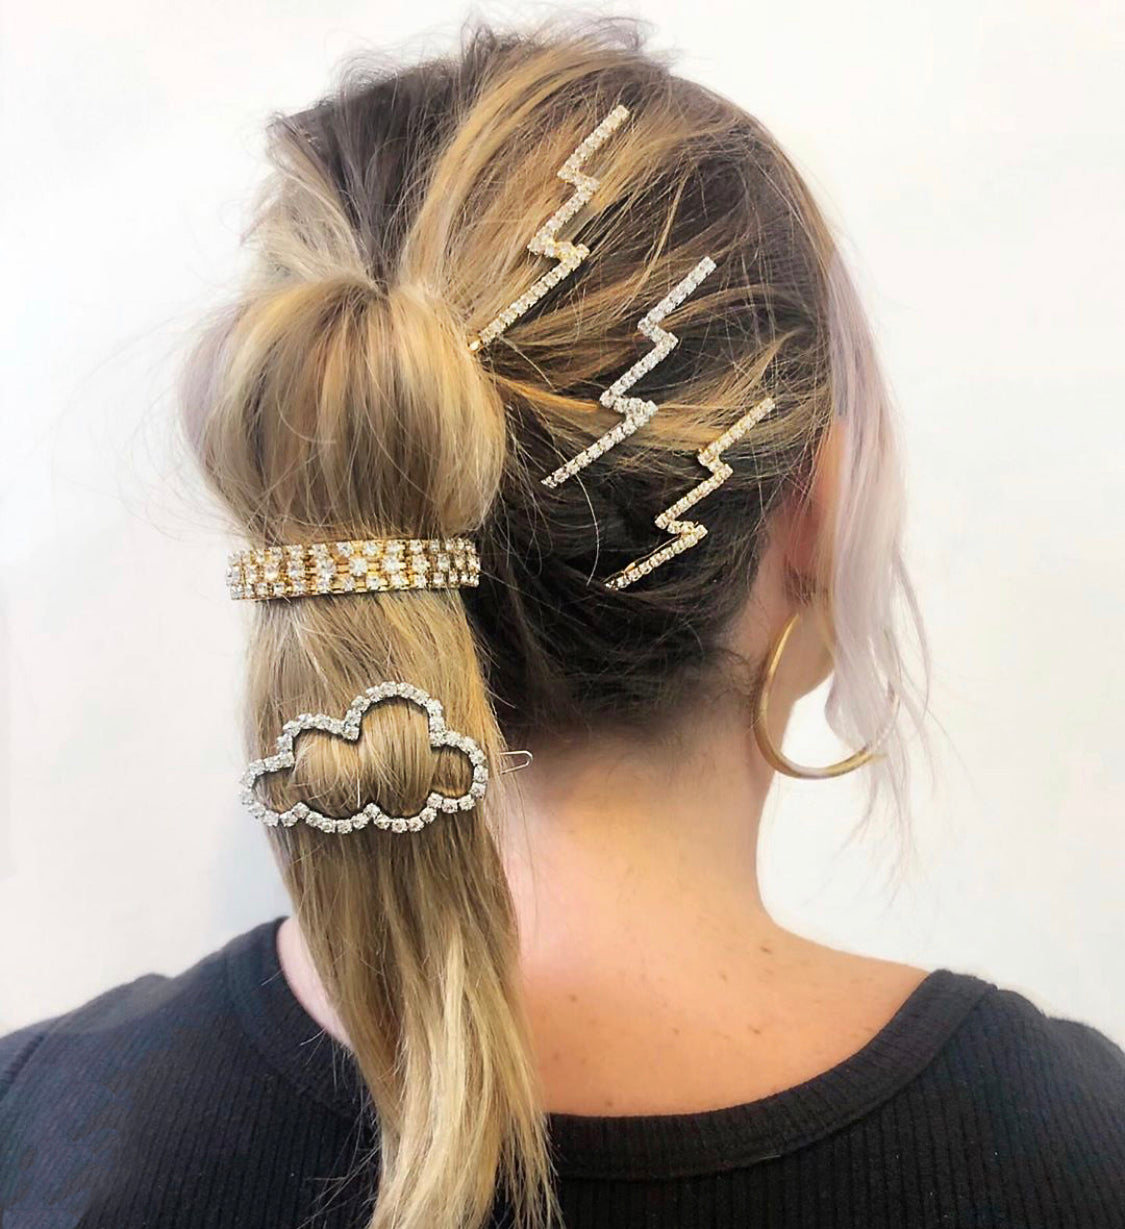 BOLT BOBBY PIN